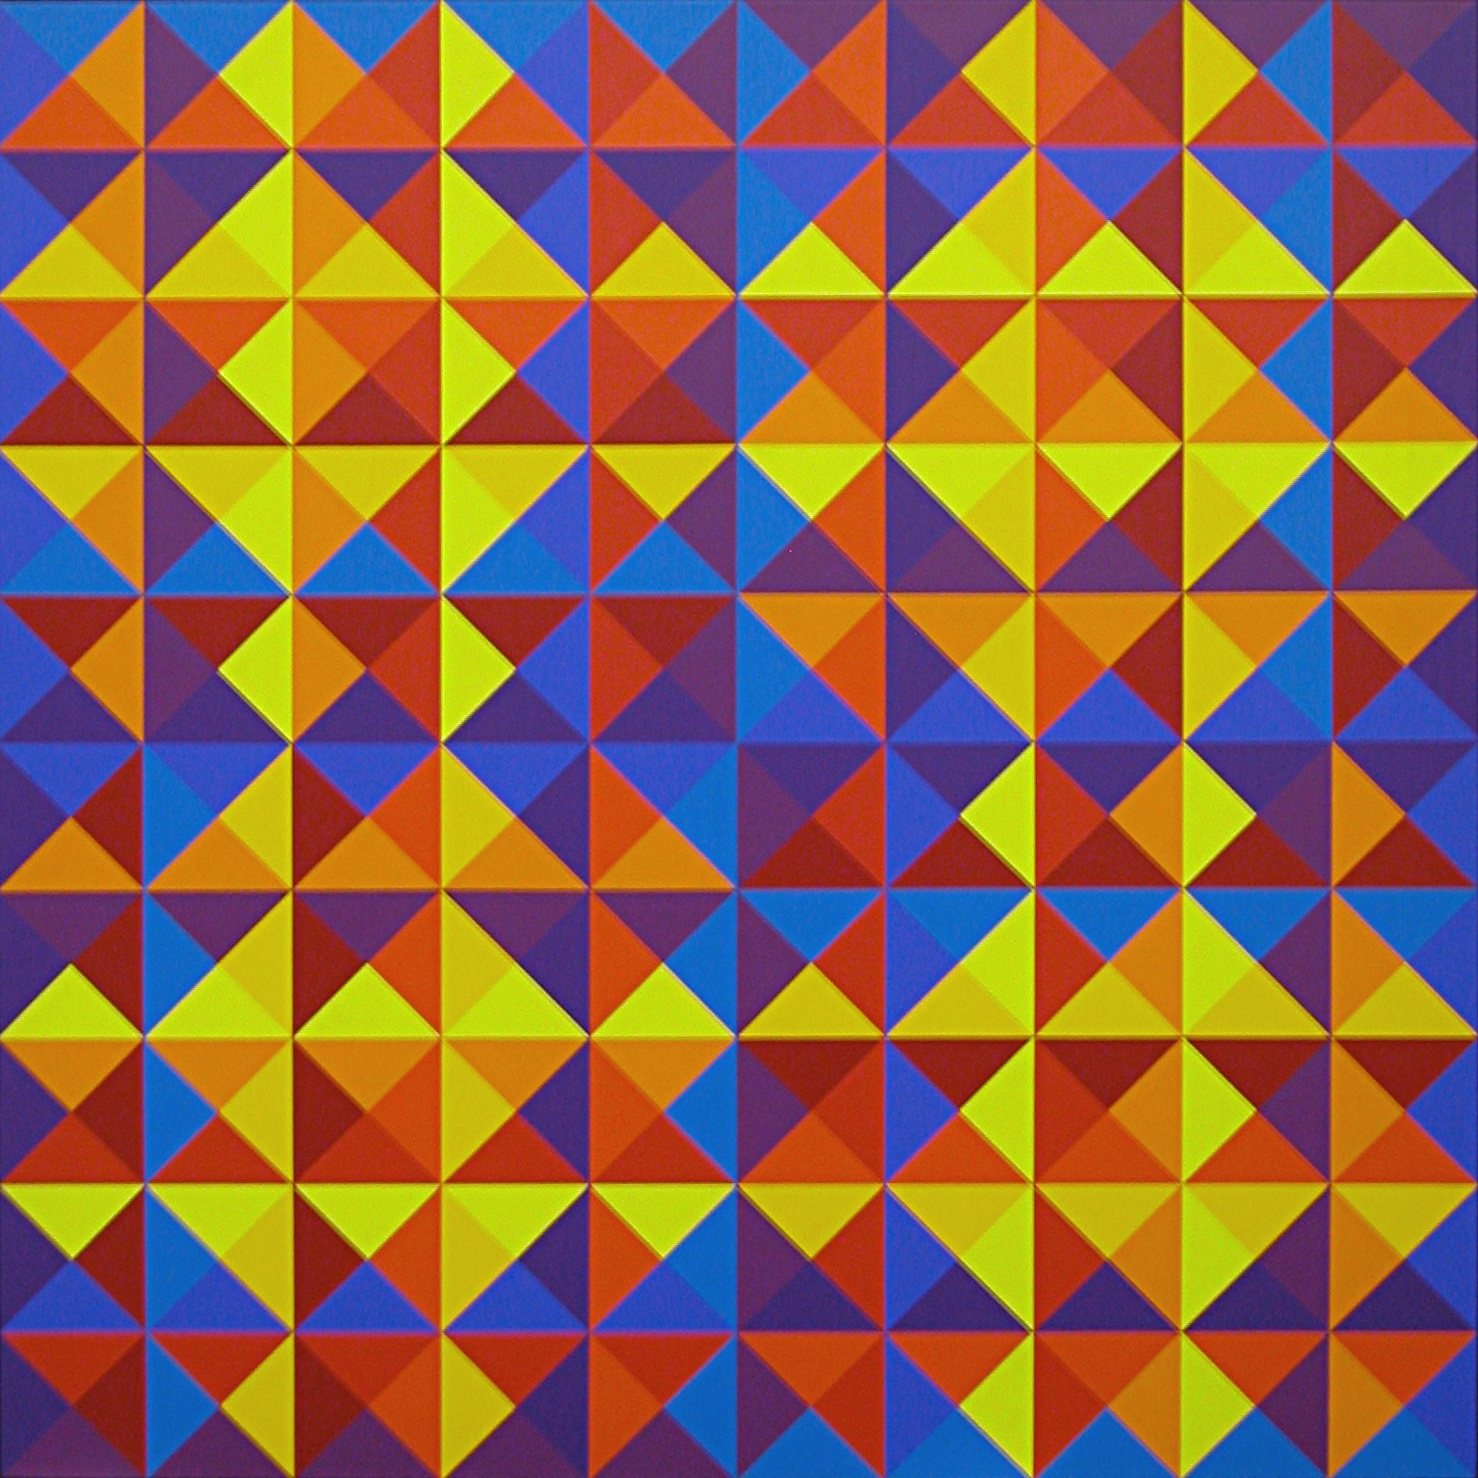 #25 , 1969  oil on canvas 57 x 57 inches; 147.3 x 147.3 centimeters